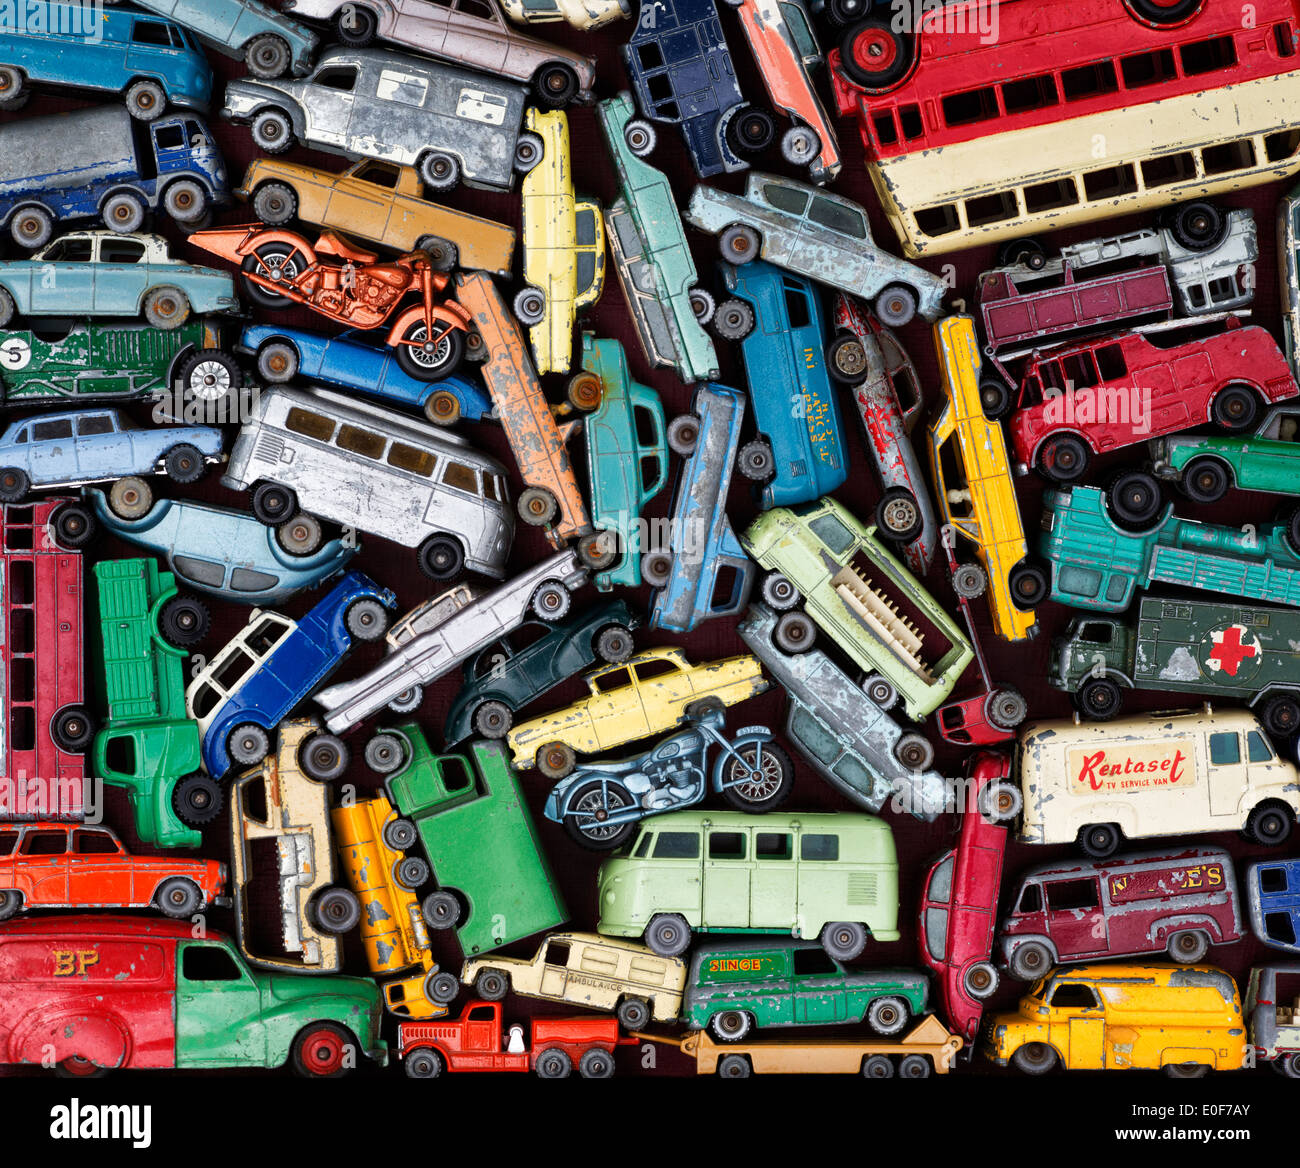 Old playworn Dinky, Matchbox Lesney toy cars, buses, motorbikes pattern - Stock Image